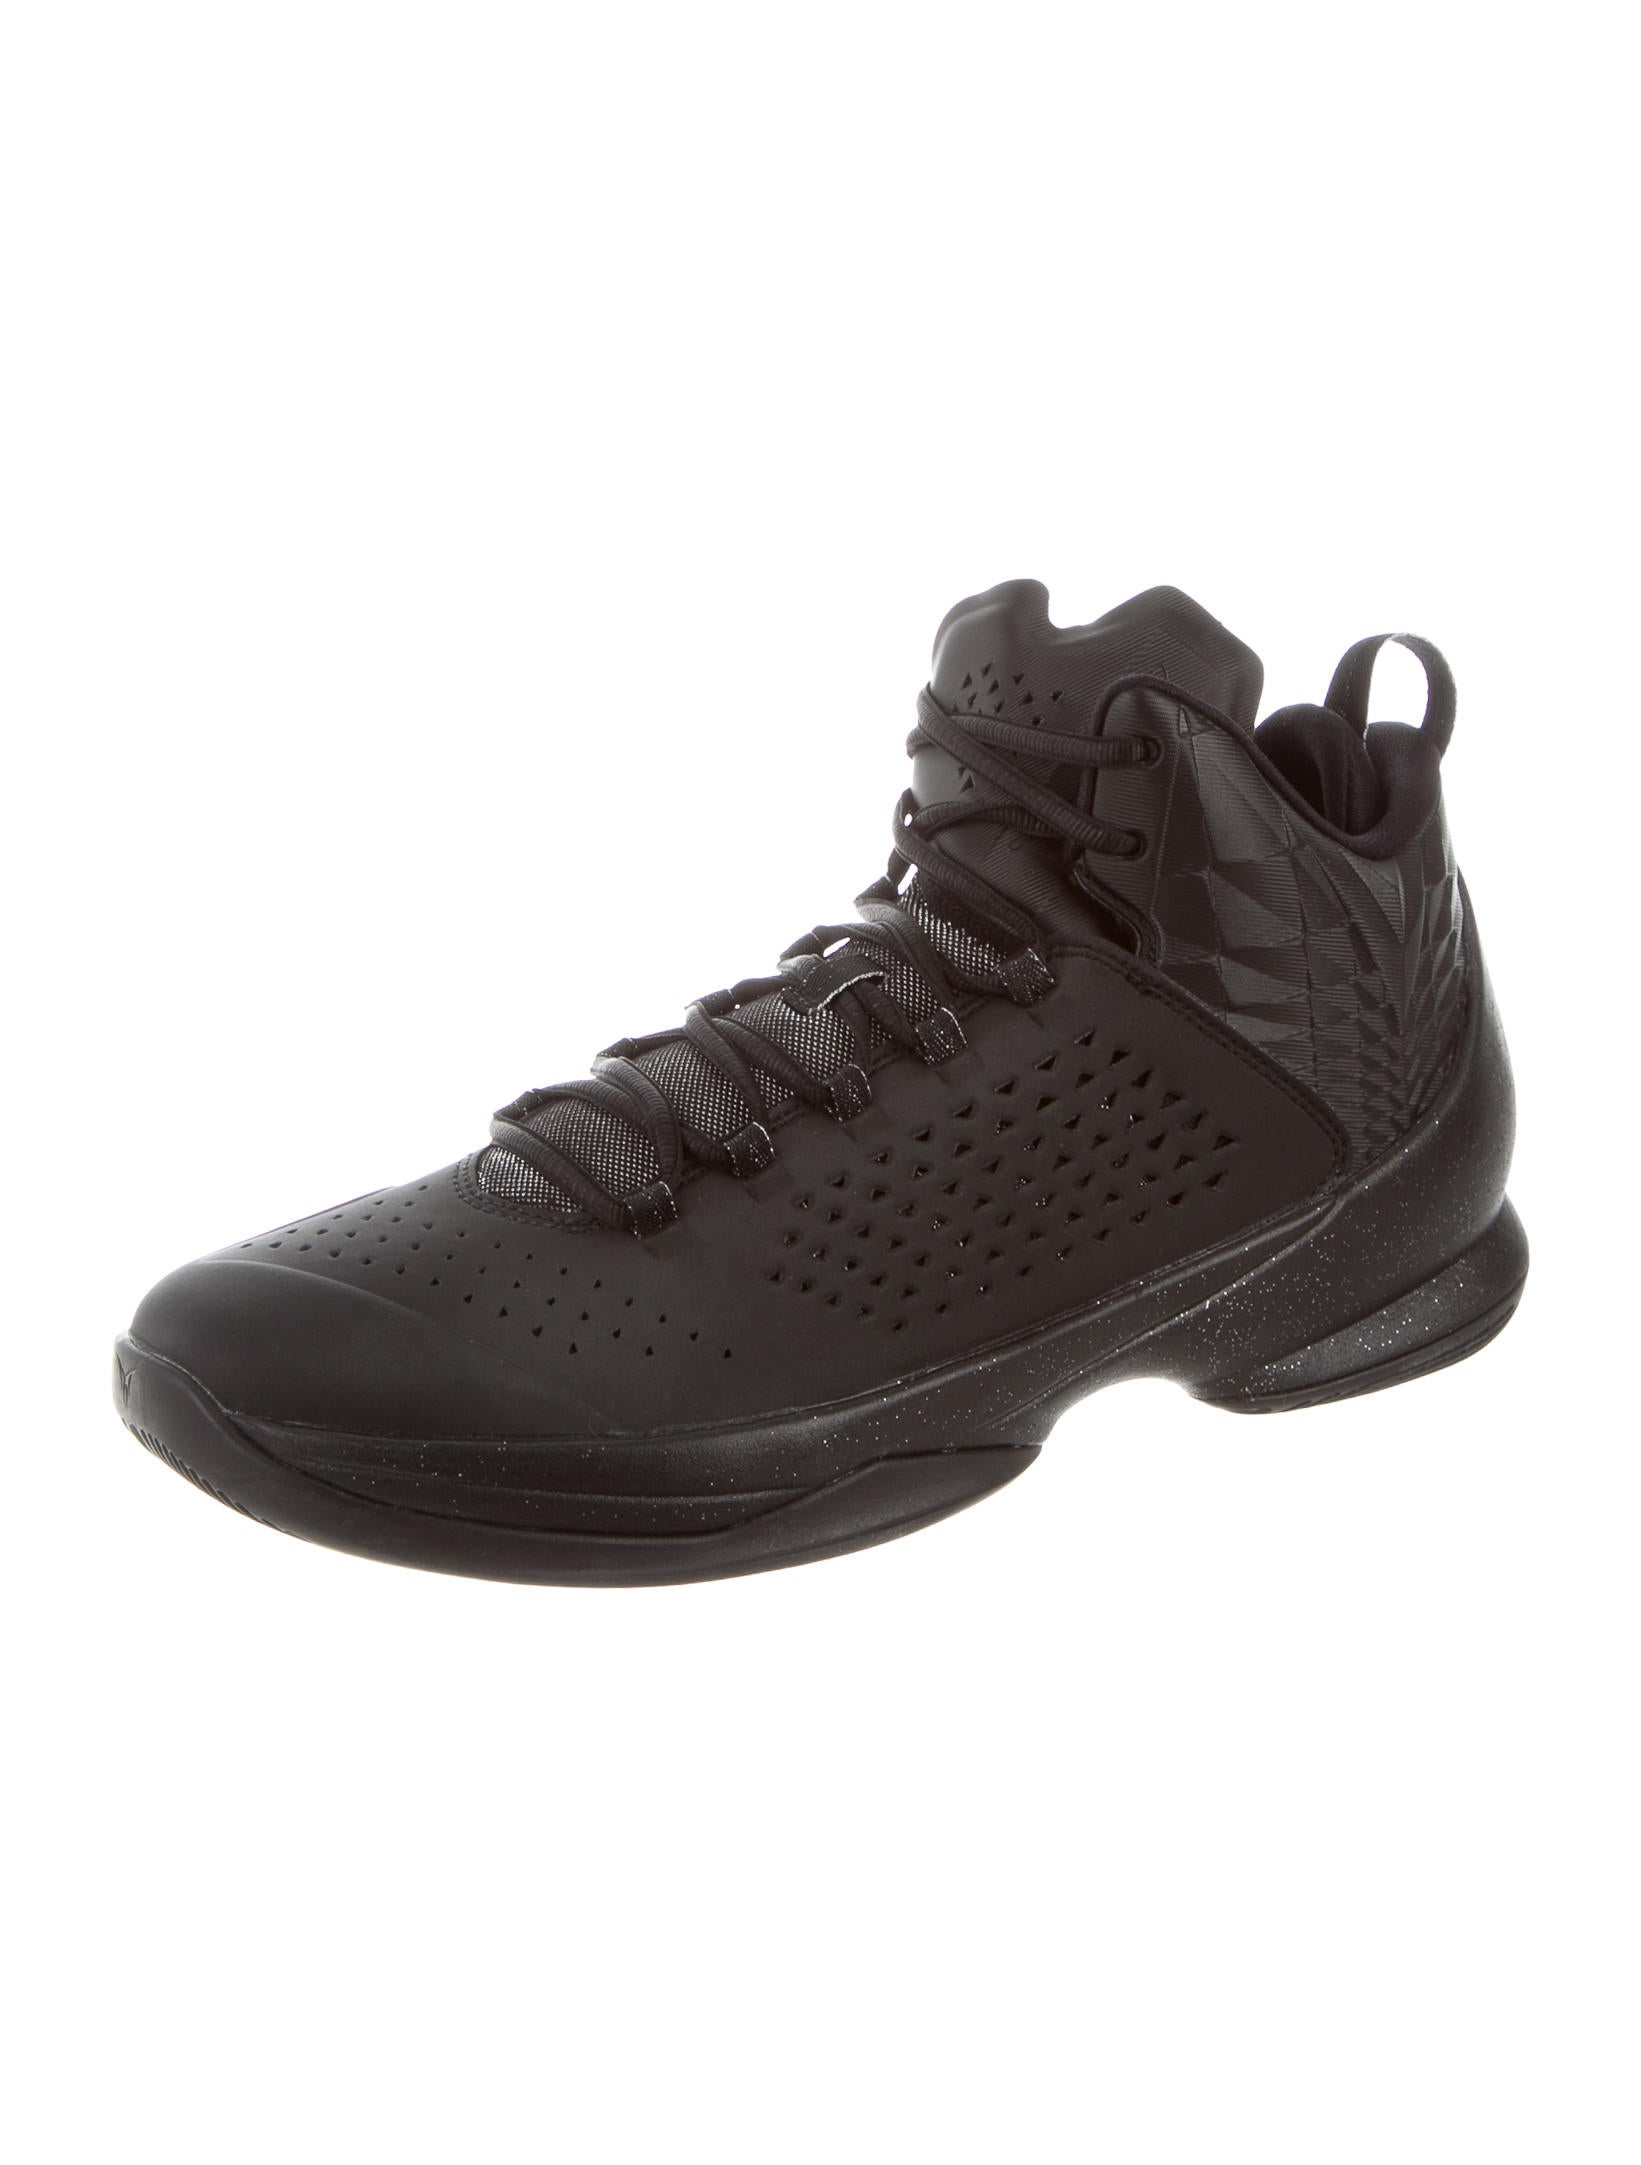 Nike Air Jordan Melo M11 Blackout Sneakers Shoes